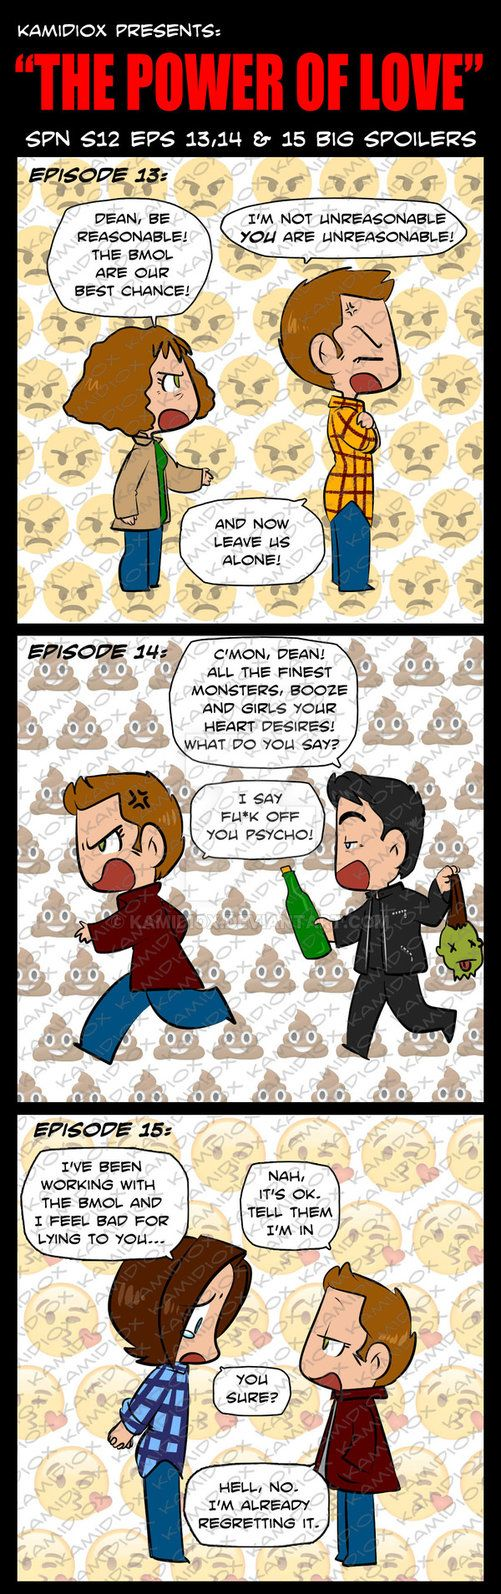 awww The Winchesters #brothers #Dean #Sam title: The Power Of Love (S12 eps 13 to15 BIG SPOILERS) by KamiDiox.deviantart.com on @DeviantArt #Supernatural fanart #brothers #Dean #Sam  #Mary Wonchester #BMOL || Mr. Ketch || Gavin MacLeod || Men of Letters